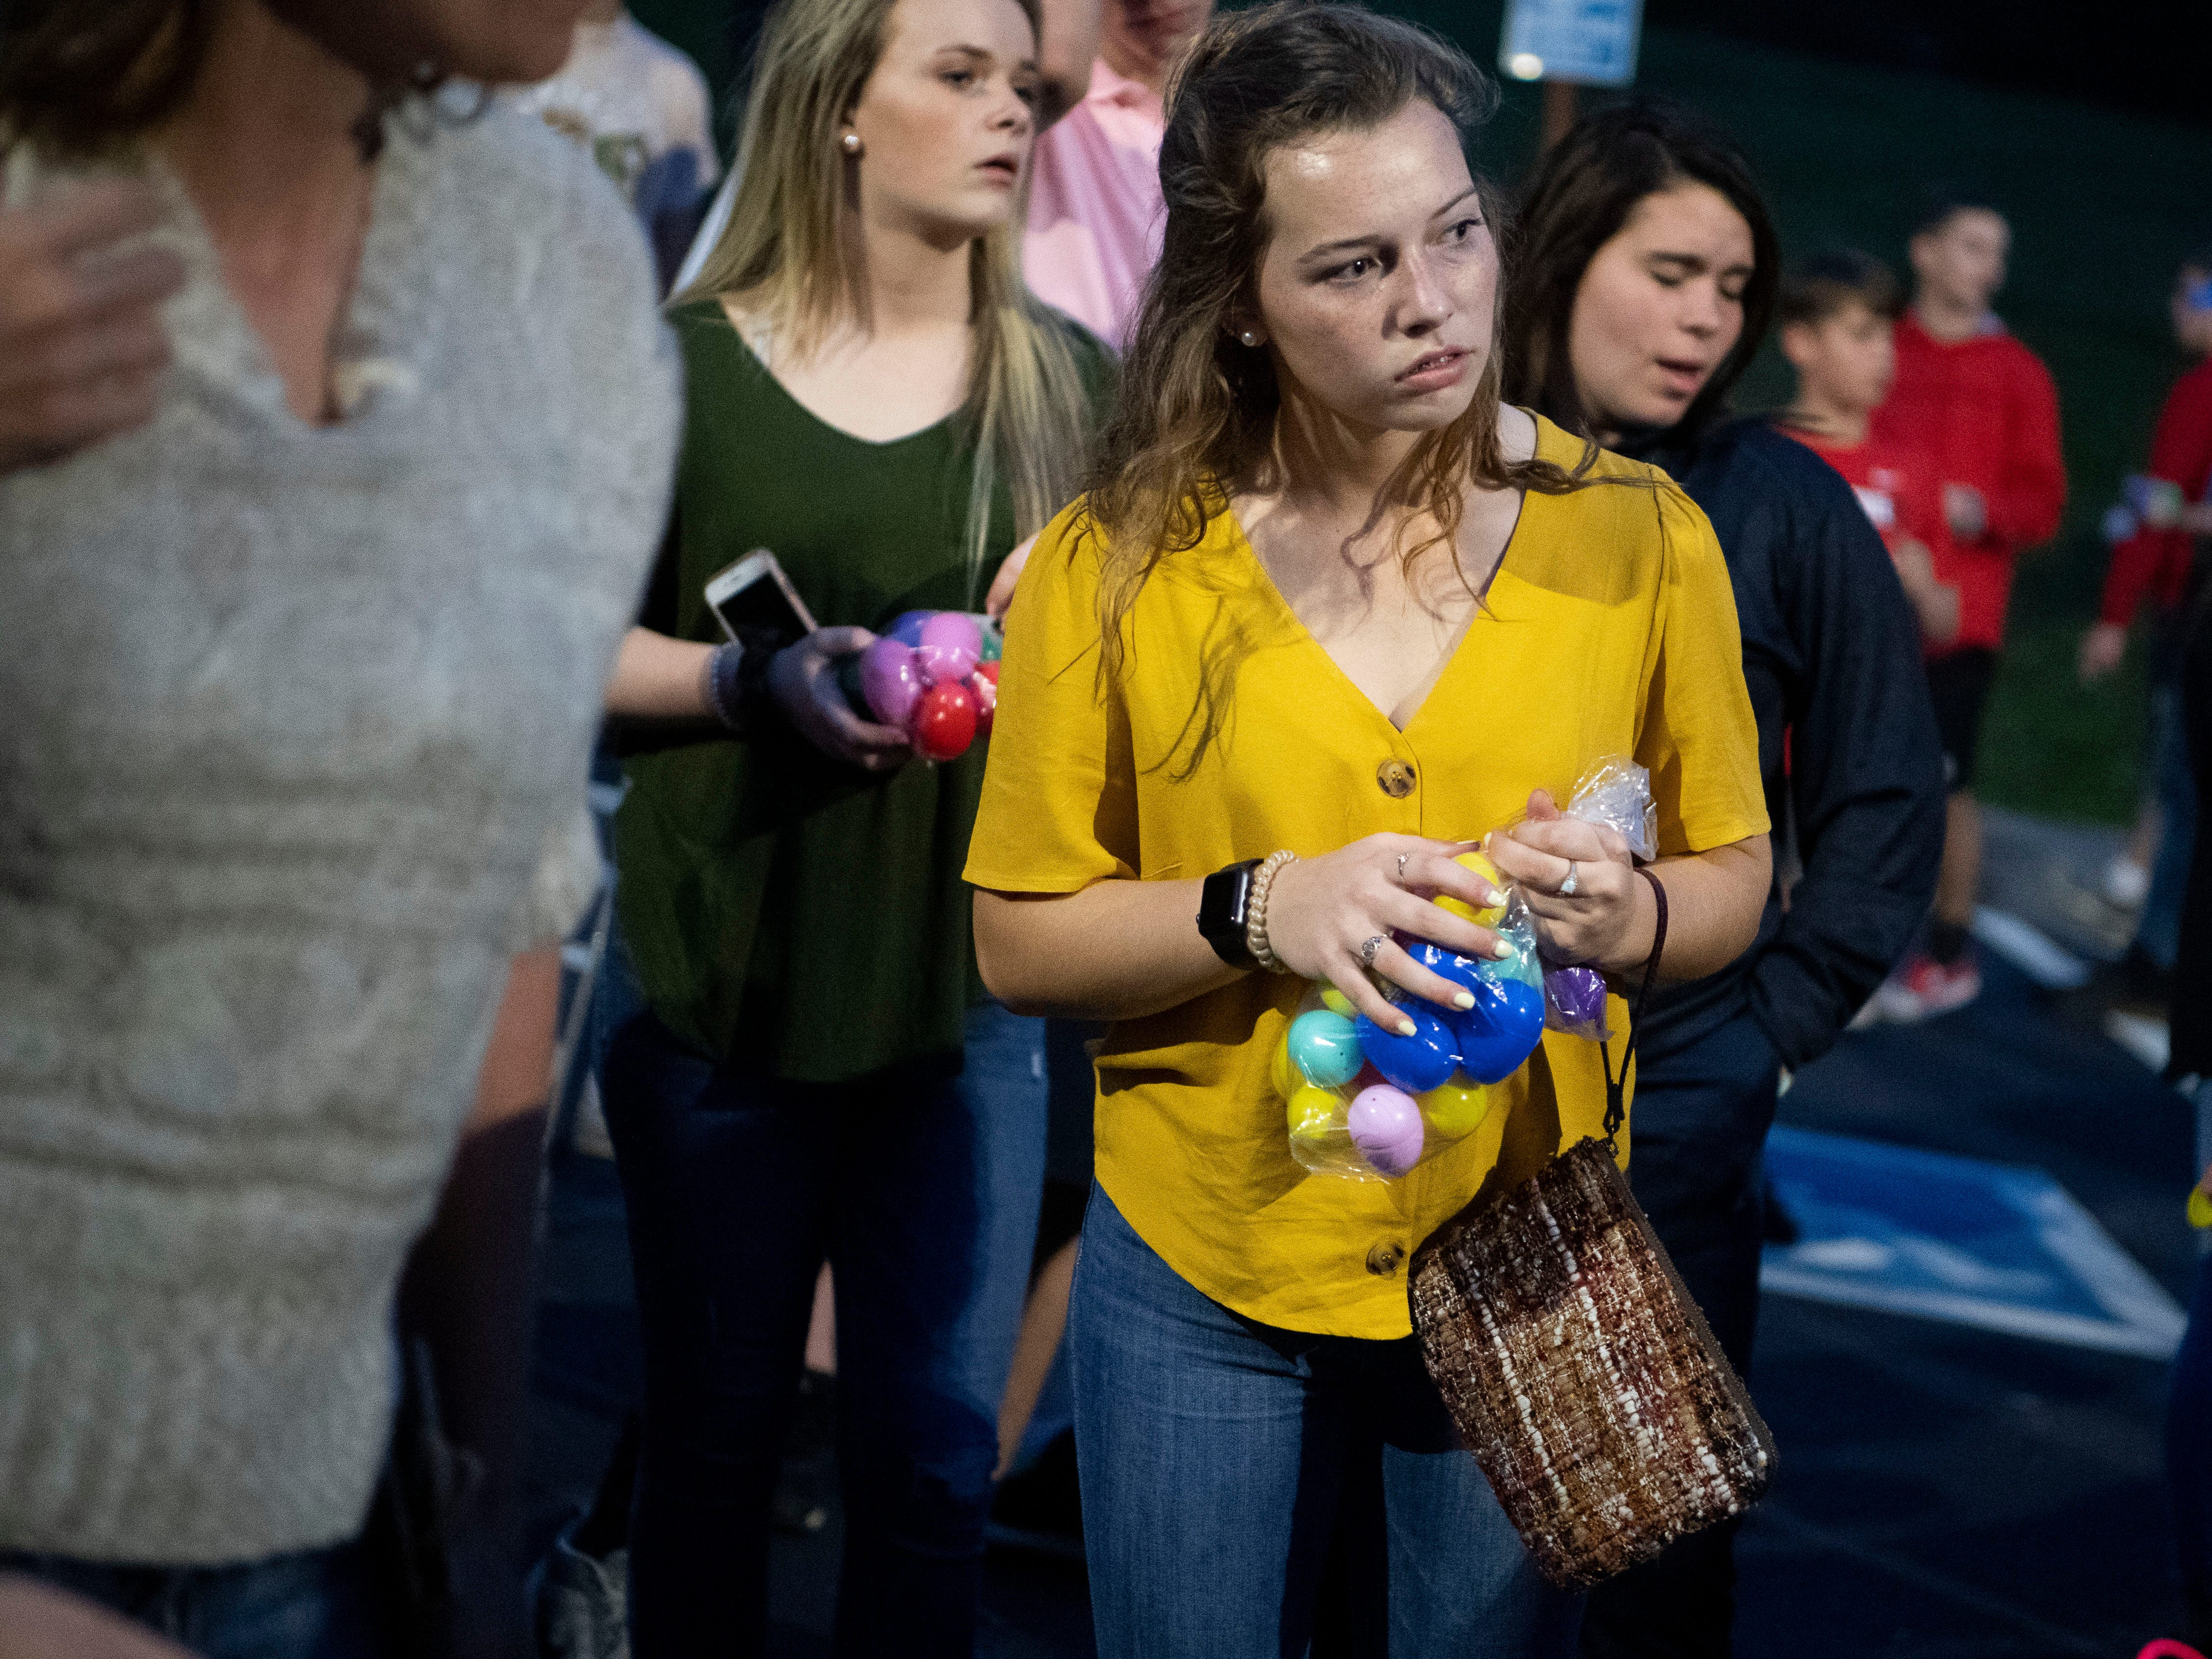 Faith Promise Church's north campus hold a battle royale themed easter egg hunt where teens searched eggs while trying to avoid being hit by foam darts on Wednesday, April 17, 2019.